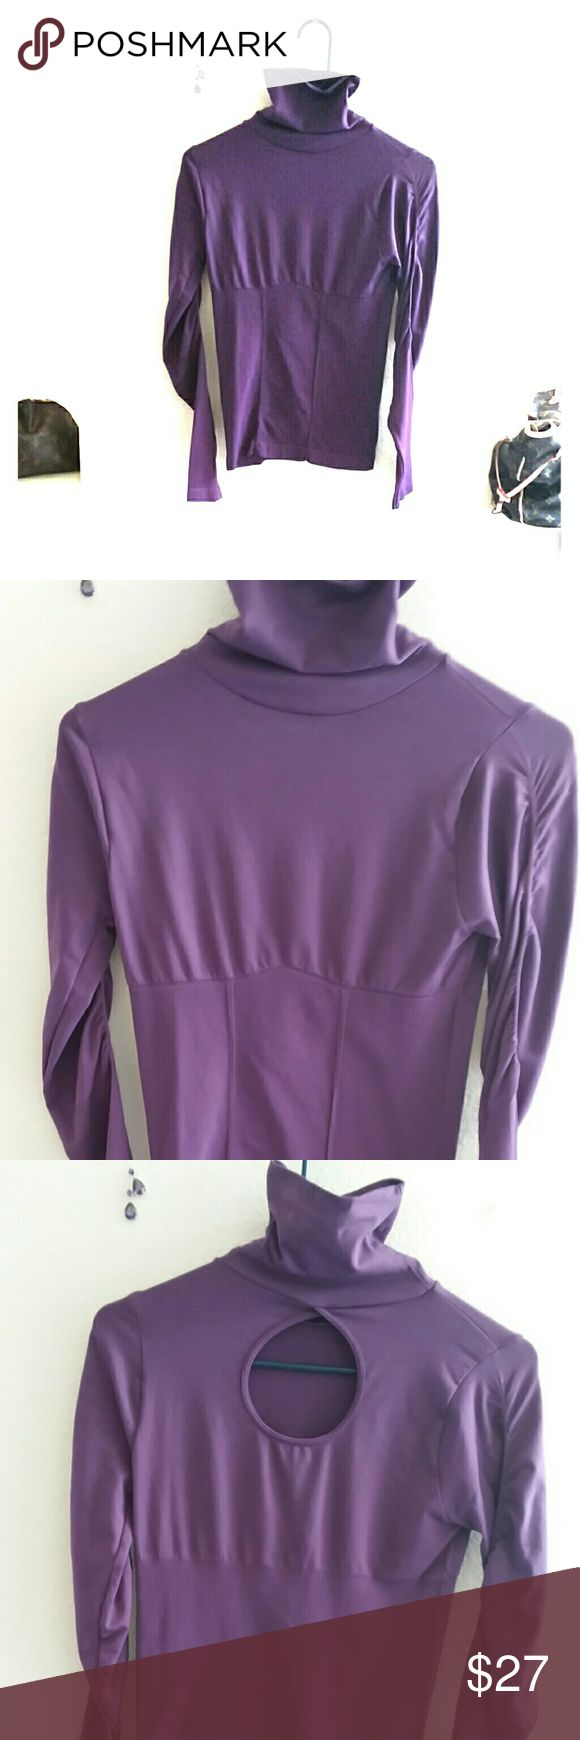 BEBE ● FUN PURPLE SEXY TOP W/ KEY HOLE IN BACK !! BEBE ●  FUN FITTED PURPLE SPANDEX & GATHERED JUST PERFECTLY ON THE ARMS & WAIST !!  WITH A SUPER SEXY KEY HOLE OPENING ON THE BACK OF THE TOP OR YOU COULD WEAR IT WITH IT IN FRONT TOO !!  NEVER WORN !!! bebe Tops